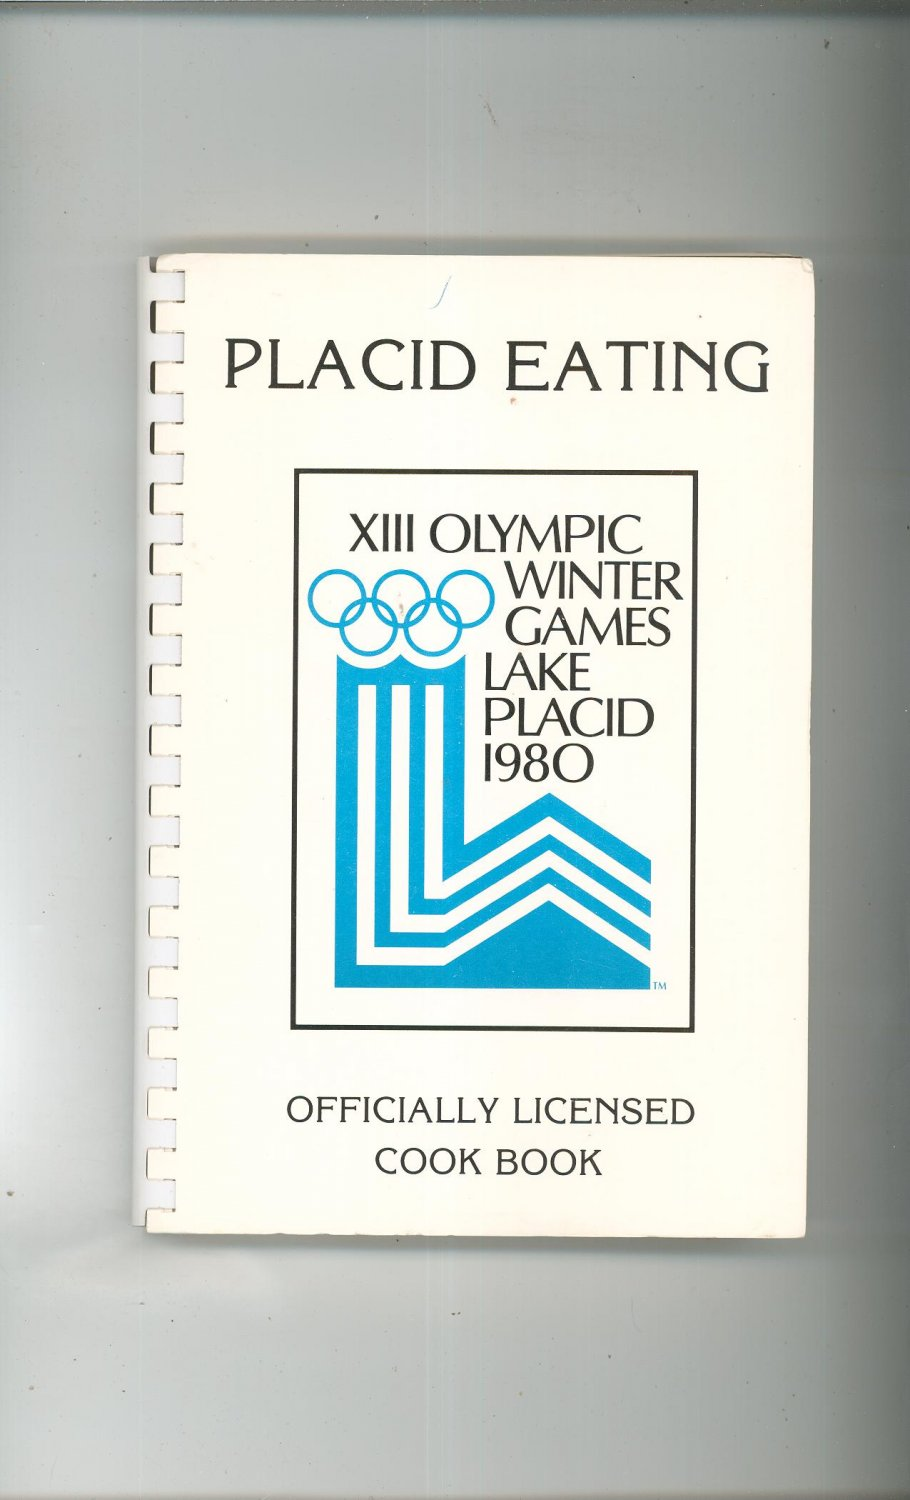 Placid Eating XIII Olympic Winter Games Lake Placid 1980 Officially Licensed Cookbook